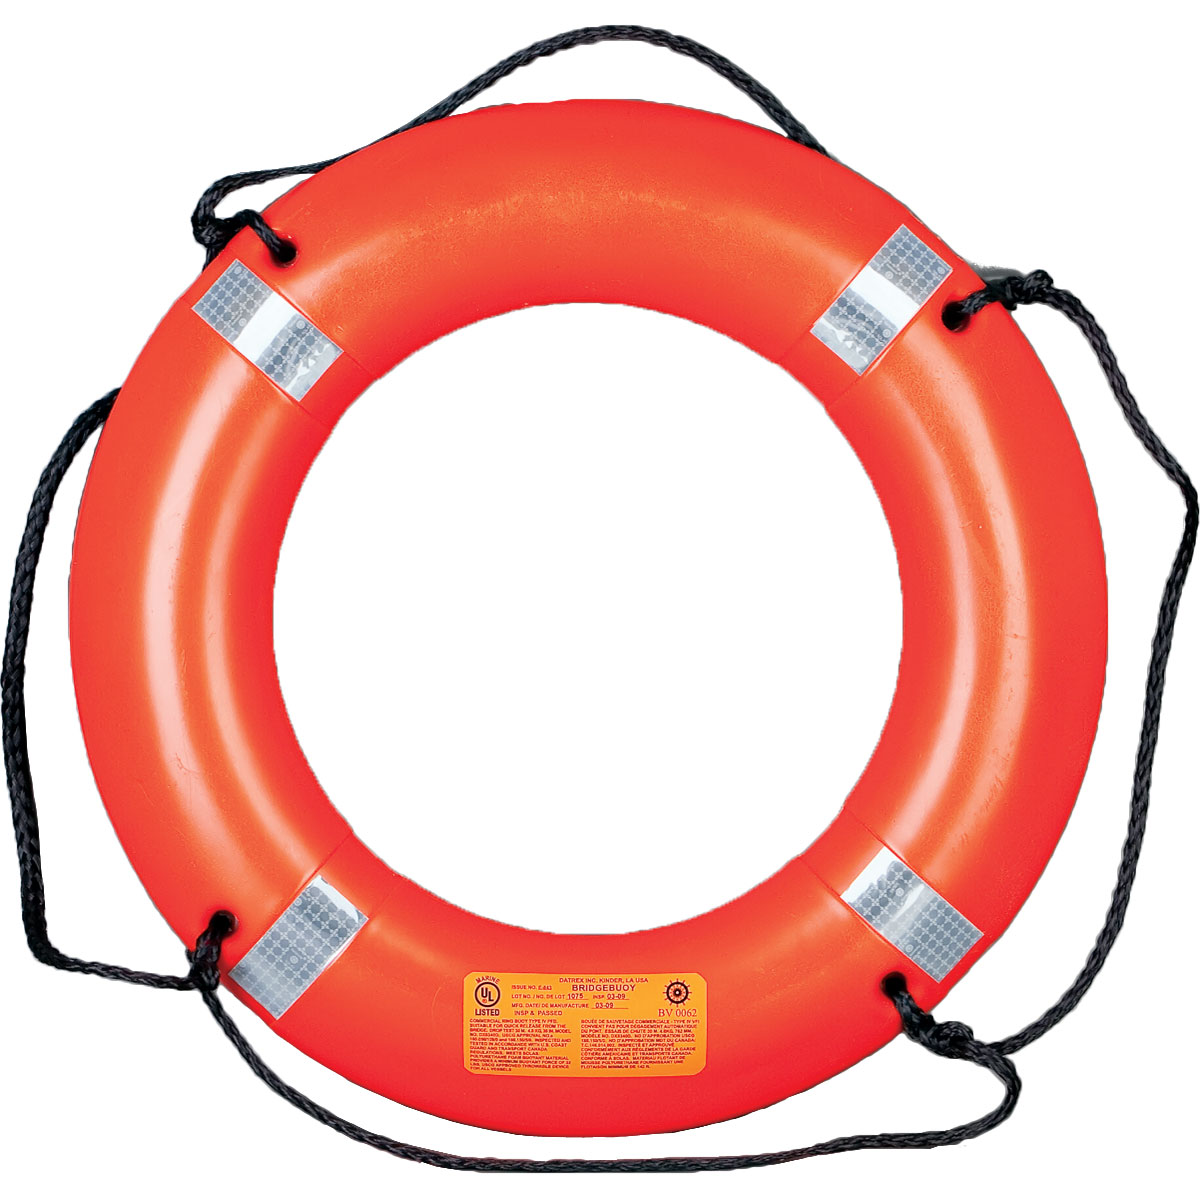 "Datrex 30"" Deckbuoy 2.5 KG USCG/SOLAS/MED/TC - Life Raft and Survival Equipment, Inc."